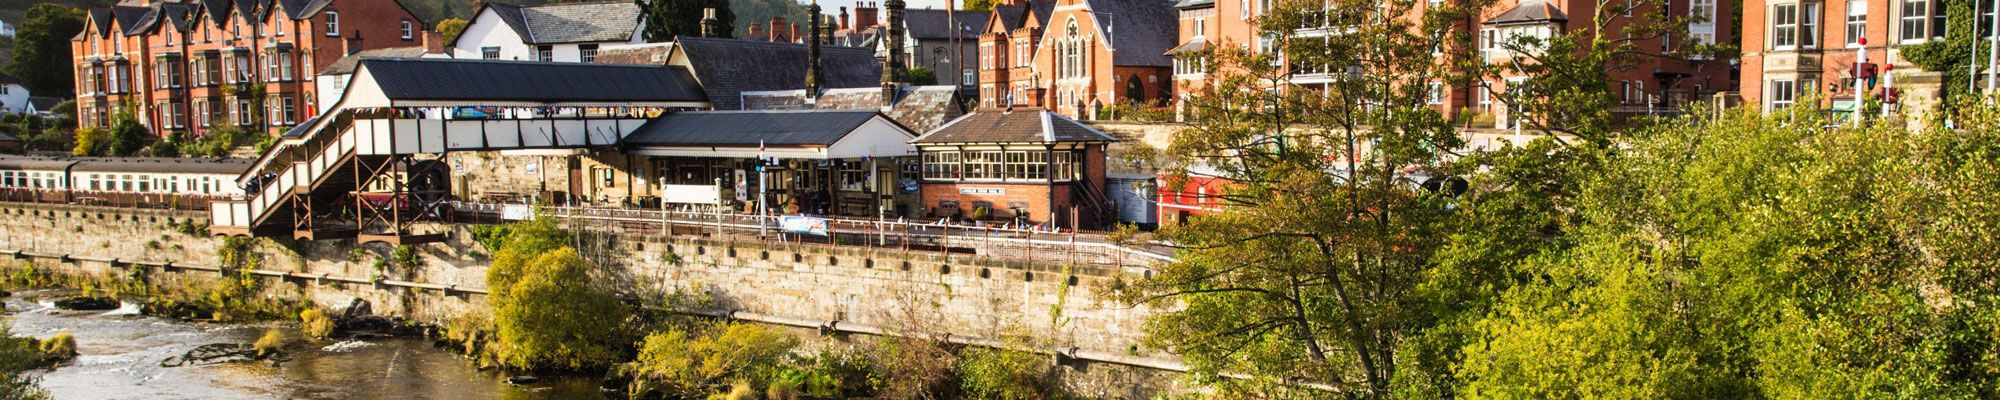 River and train station in Llangollen, North Wales